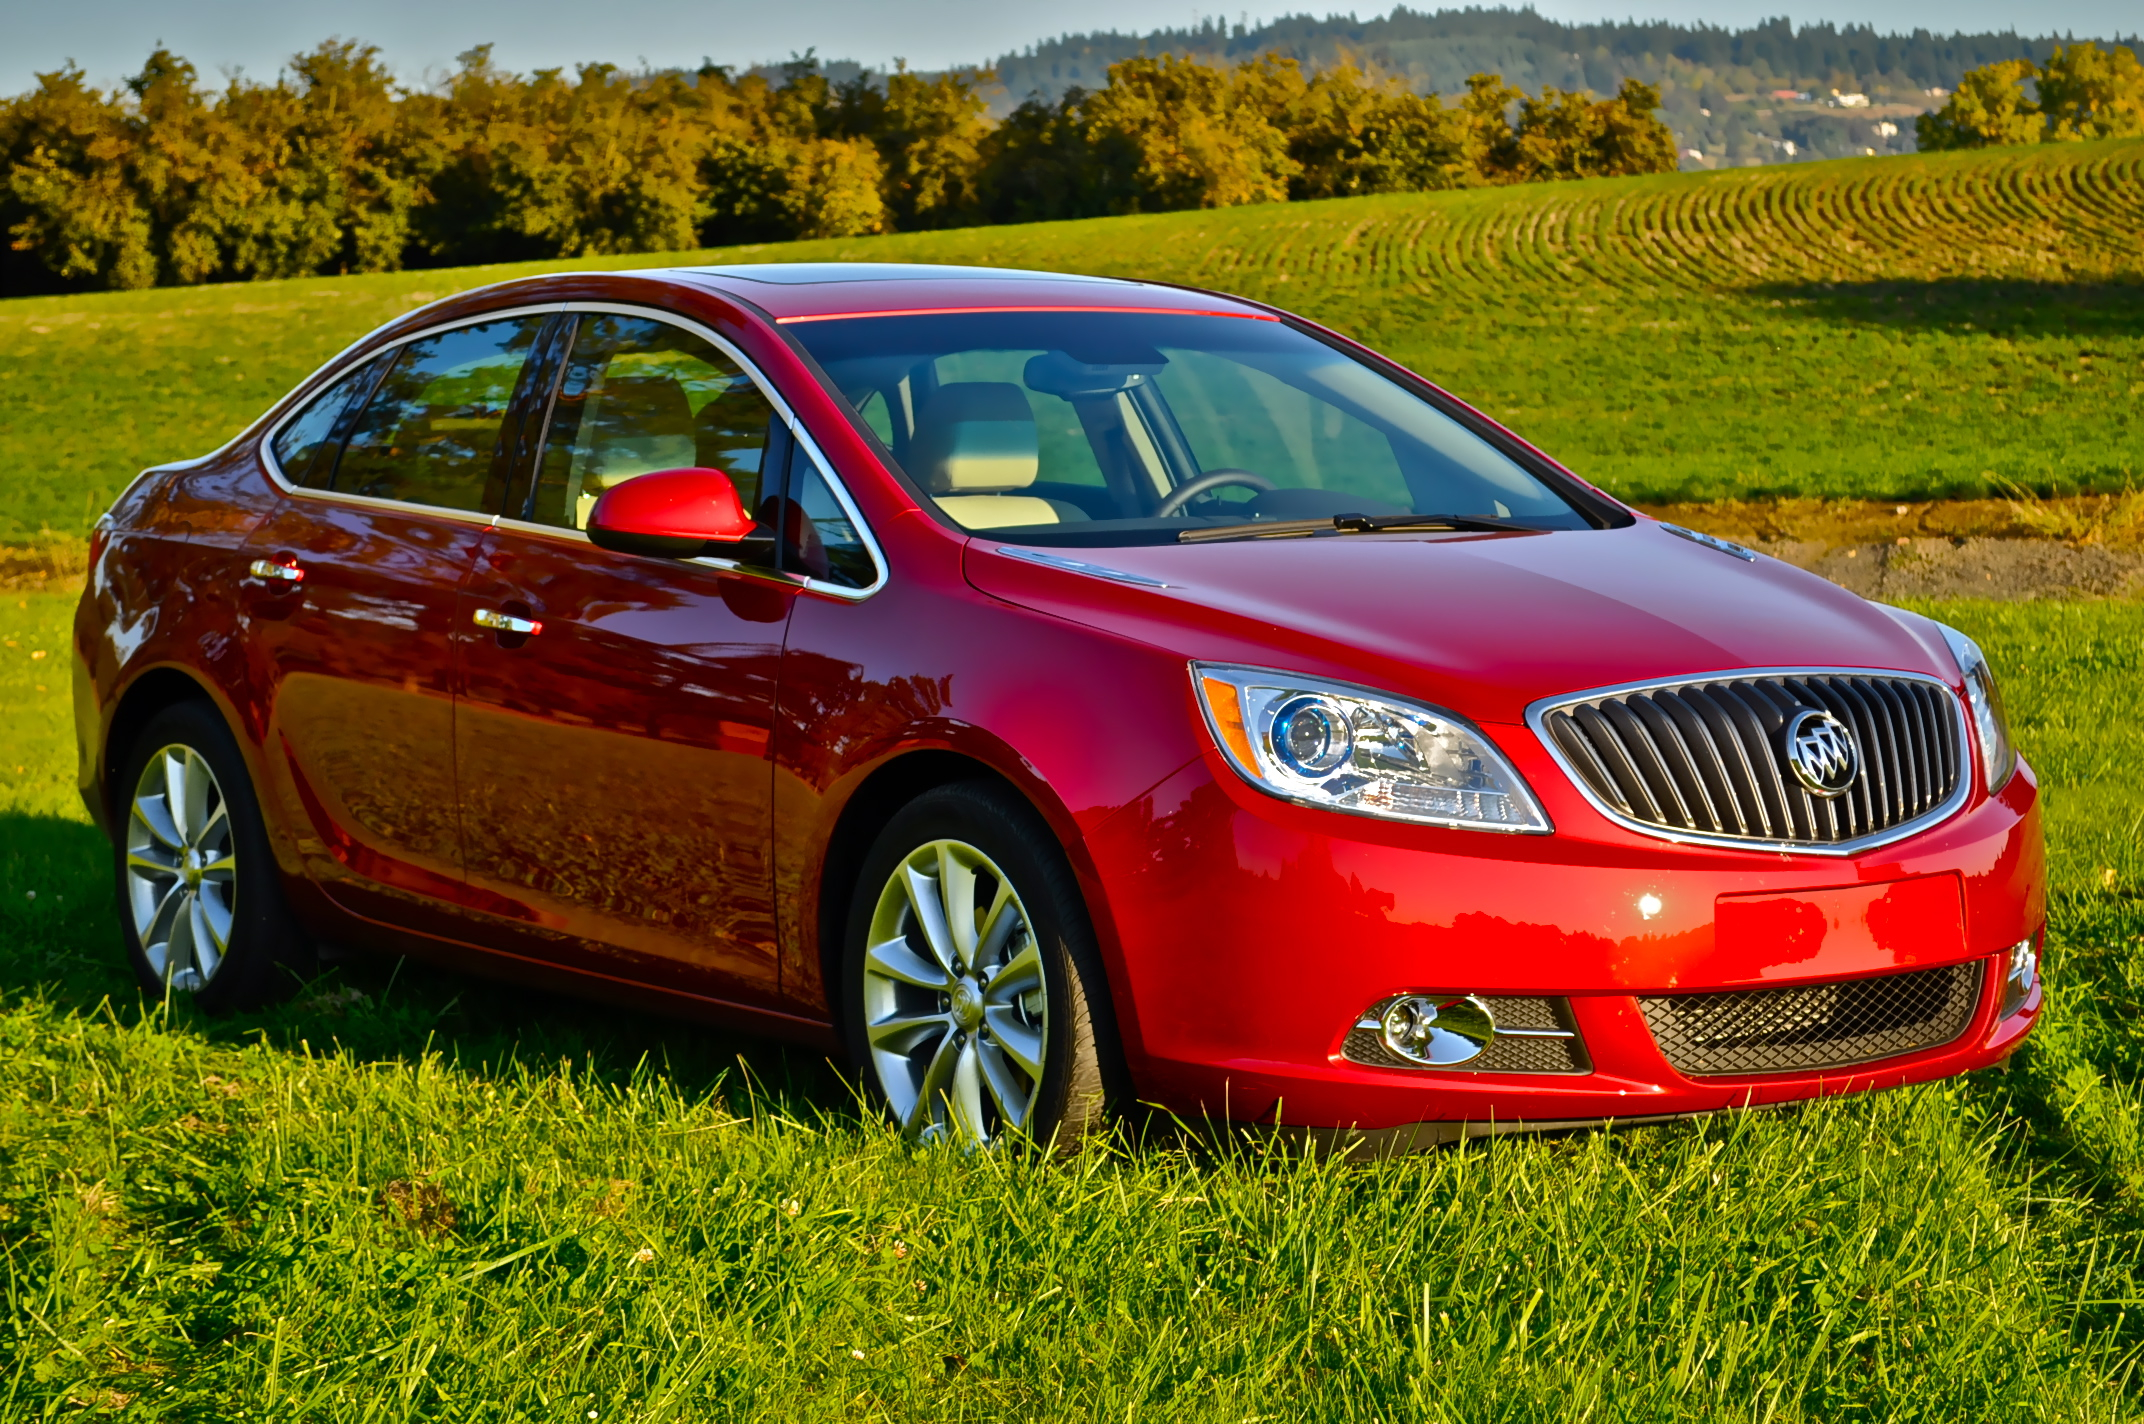 2012 Buick Verano First Drive Review 2022 Buick Verano Tire Size, Mpg, Gas Mileage